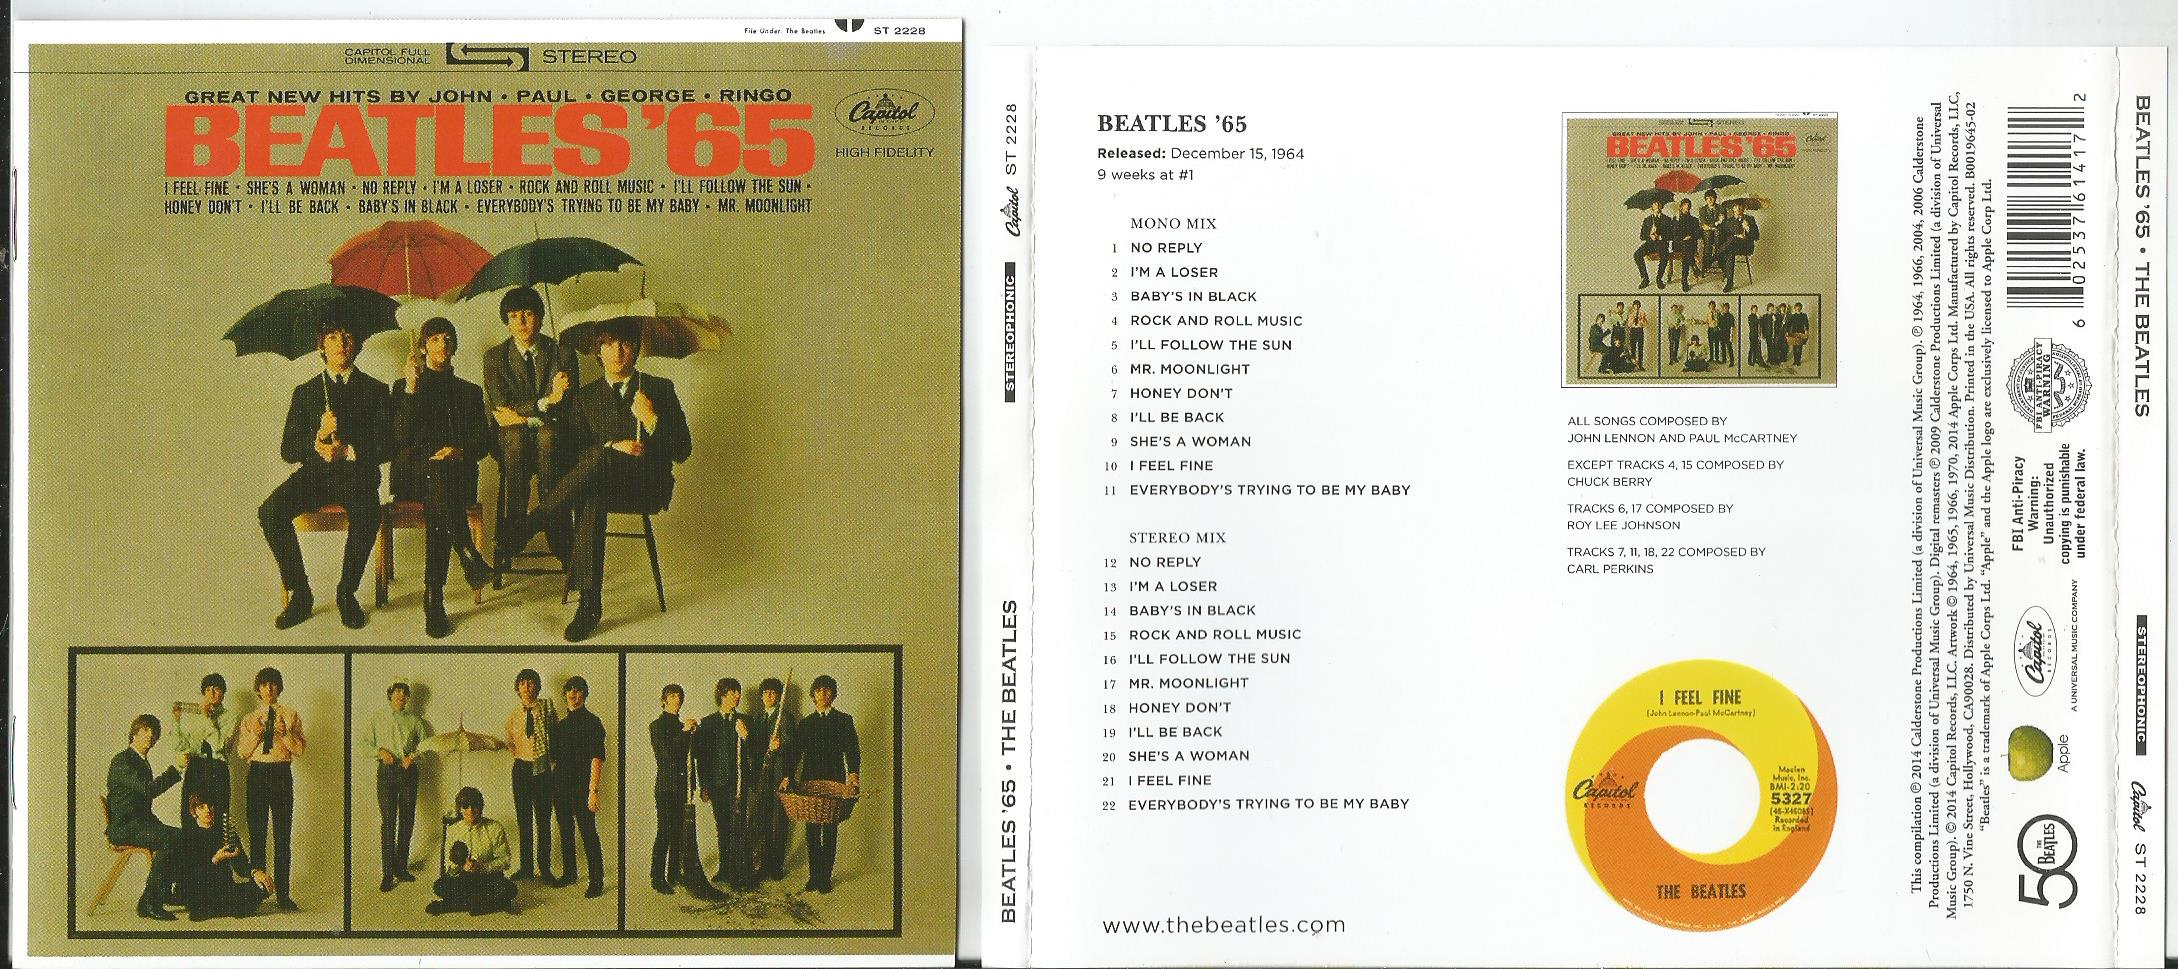 BEATLES, THE BEATLES '65 (2014 release, mono + stereo mixes, 8 page booklet)